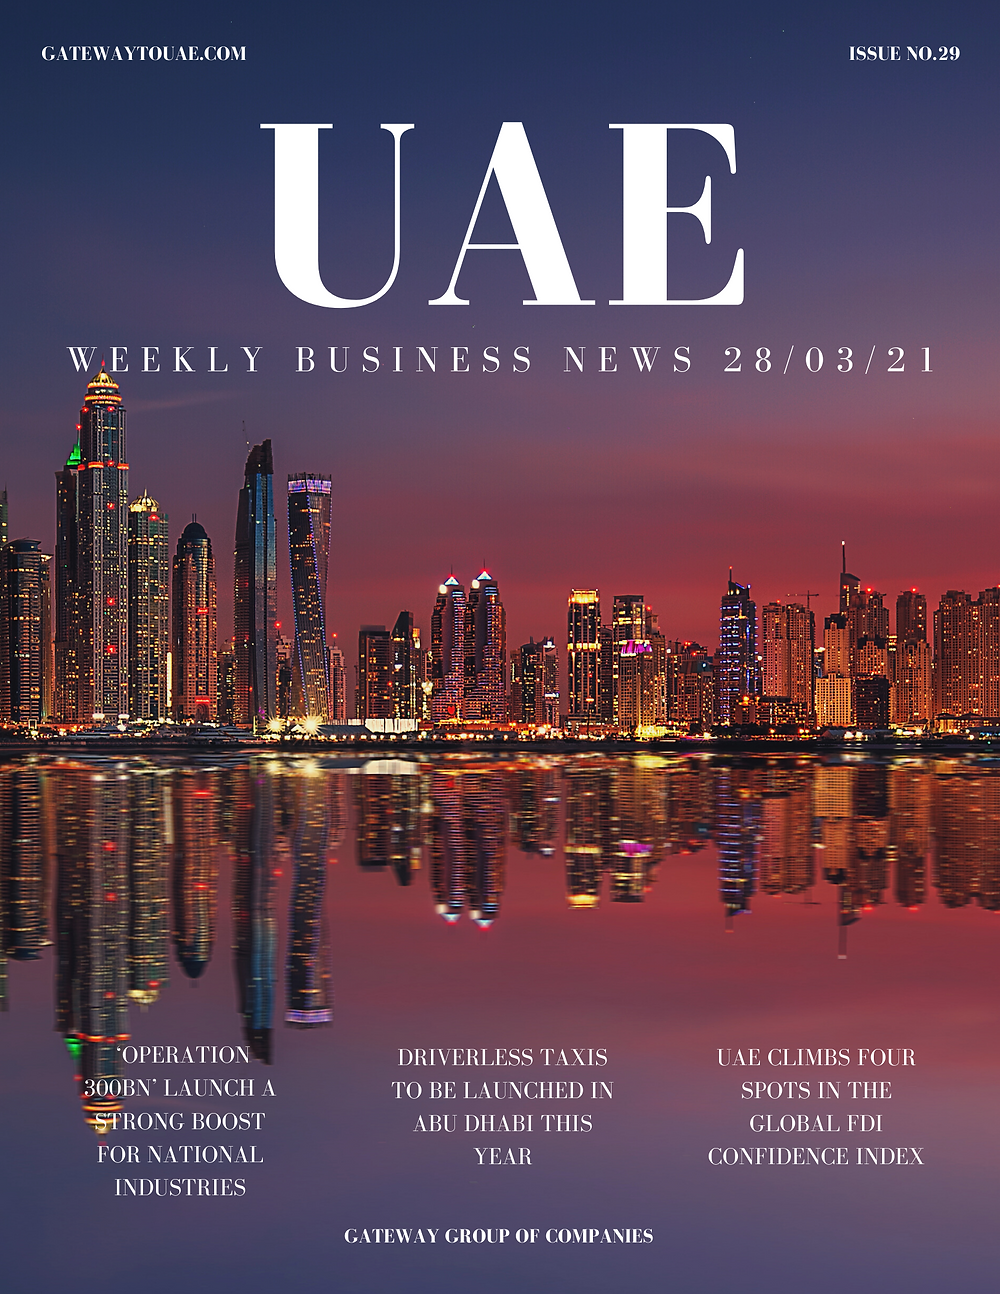 UAE weekly business news headlines 28th March 2021 Issue 29 Gateway Group Of Companies Abu Dhabi Dubai weekly magazine company formation business setup local sponsor service agent visas company formation authority